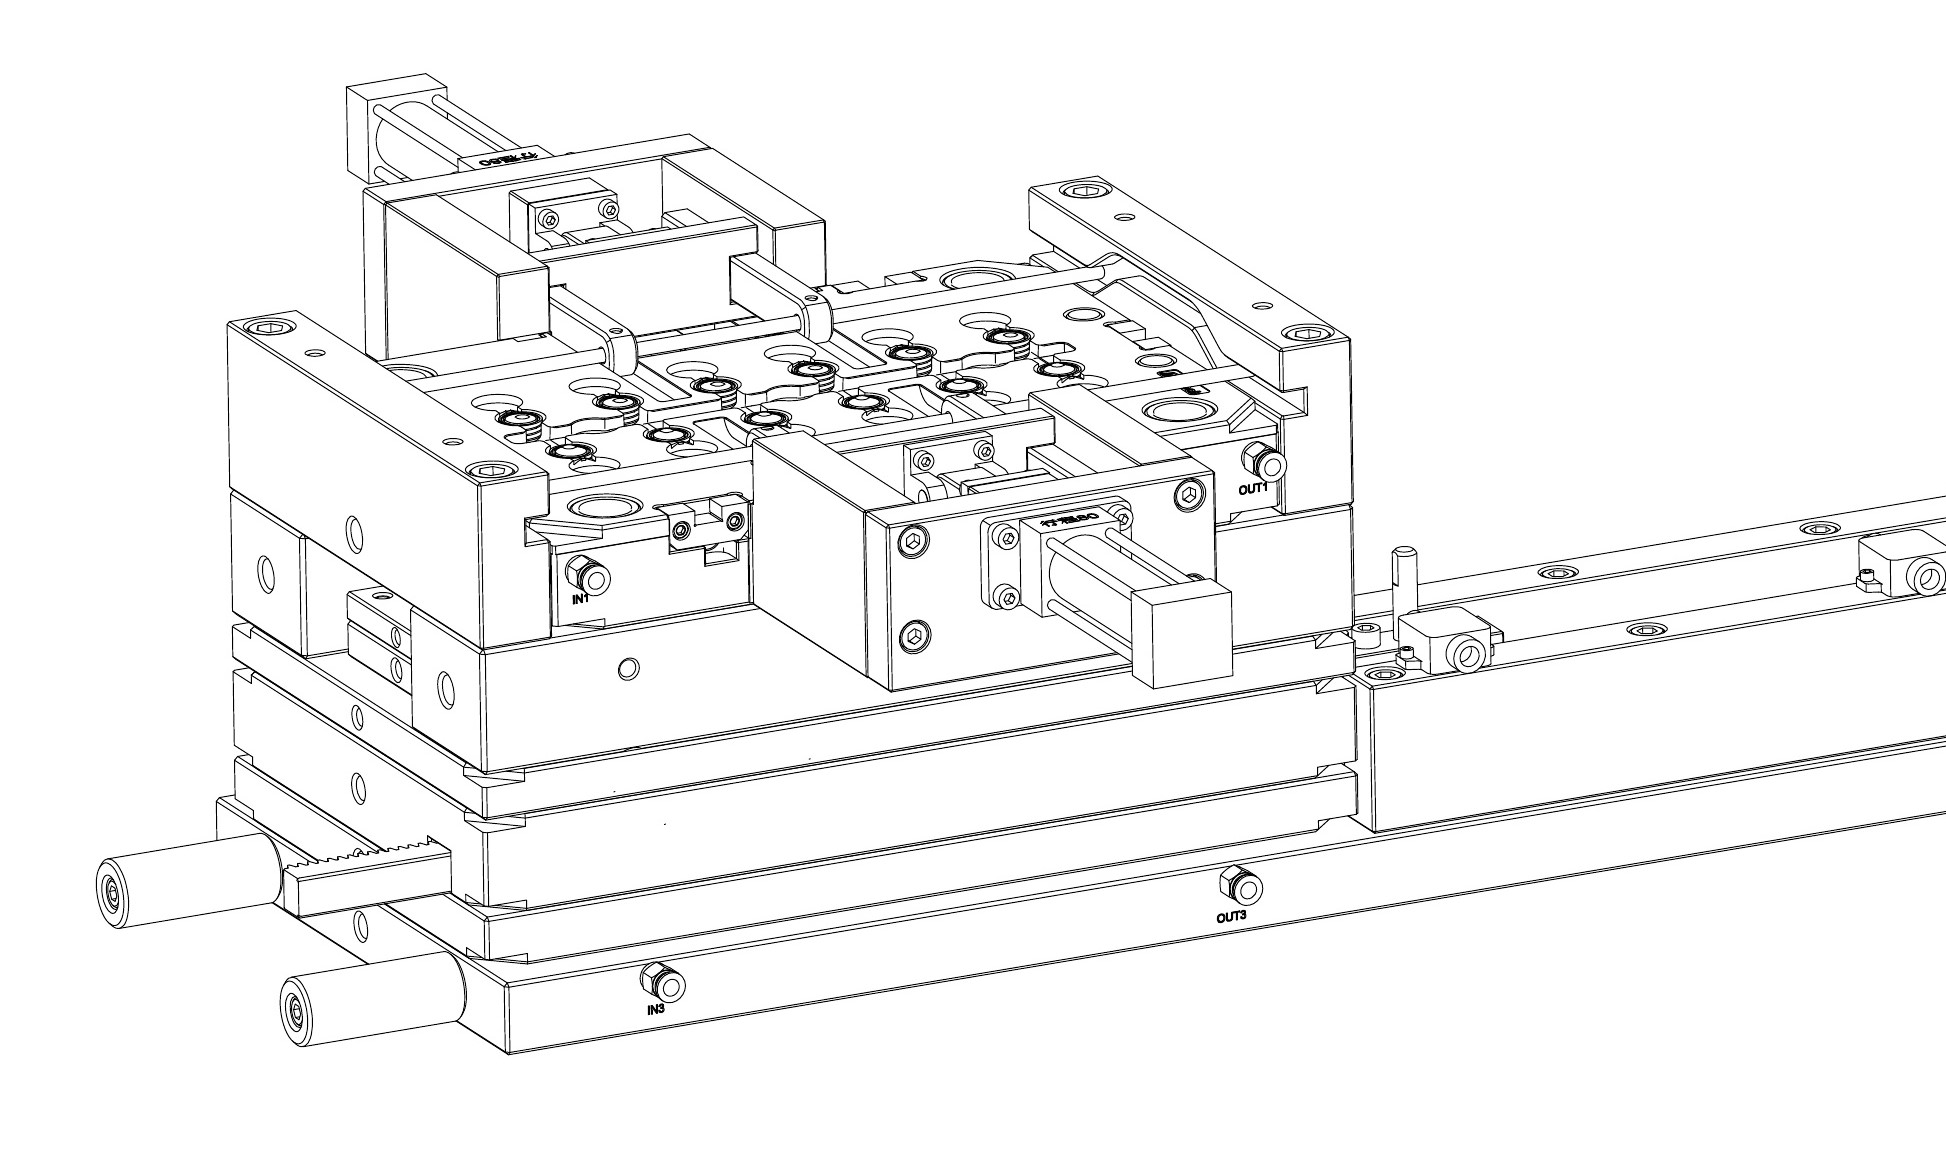 Plastic Injection Mold Design And Engineering